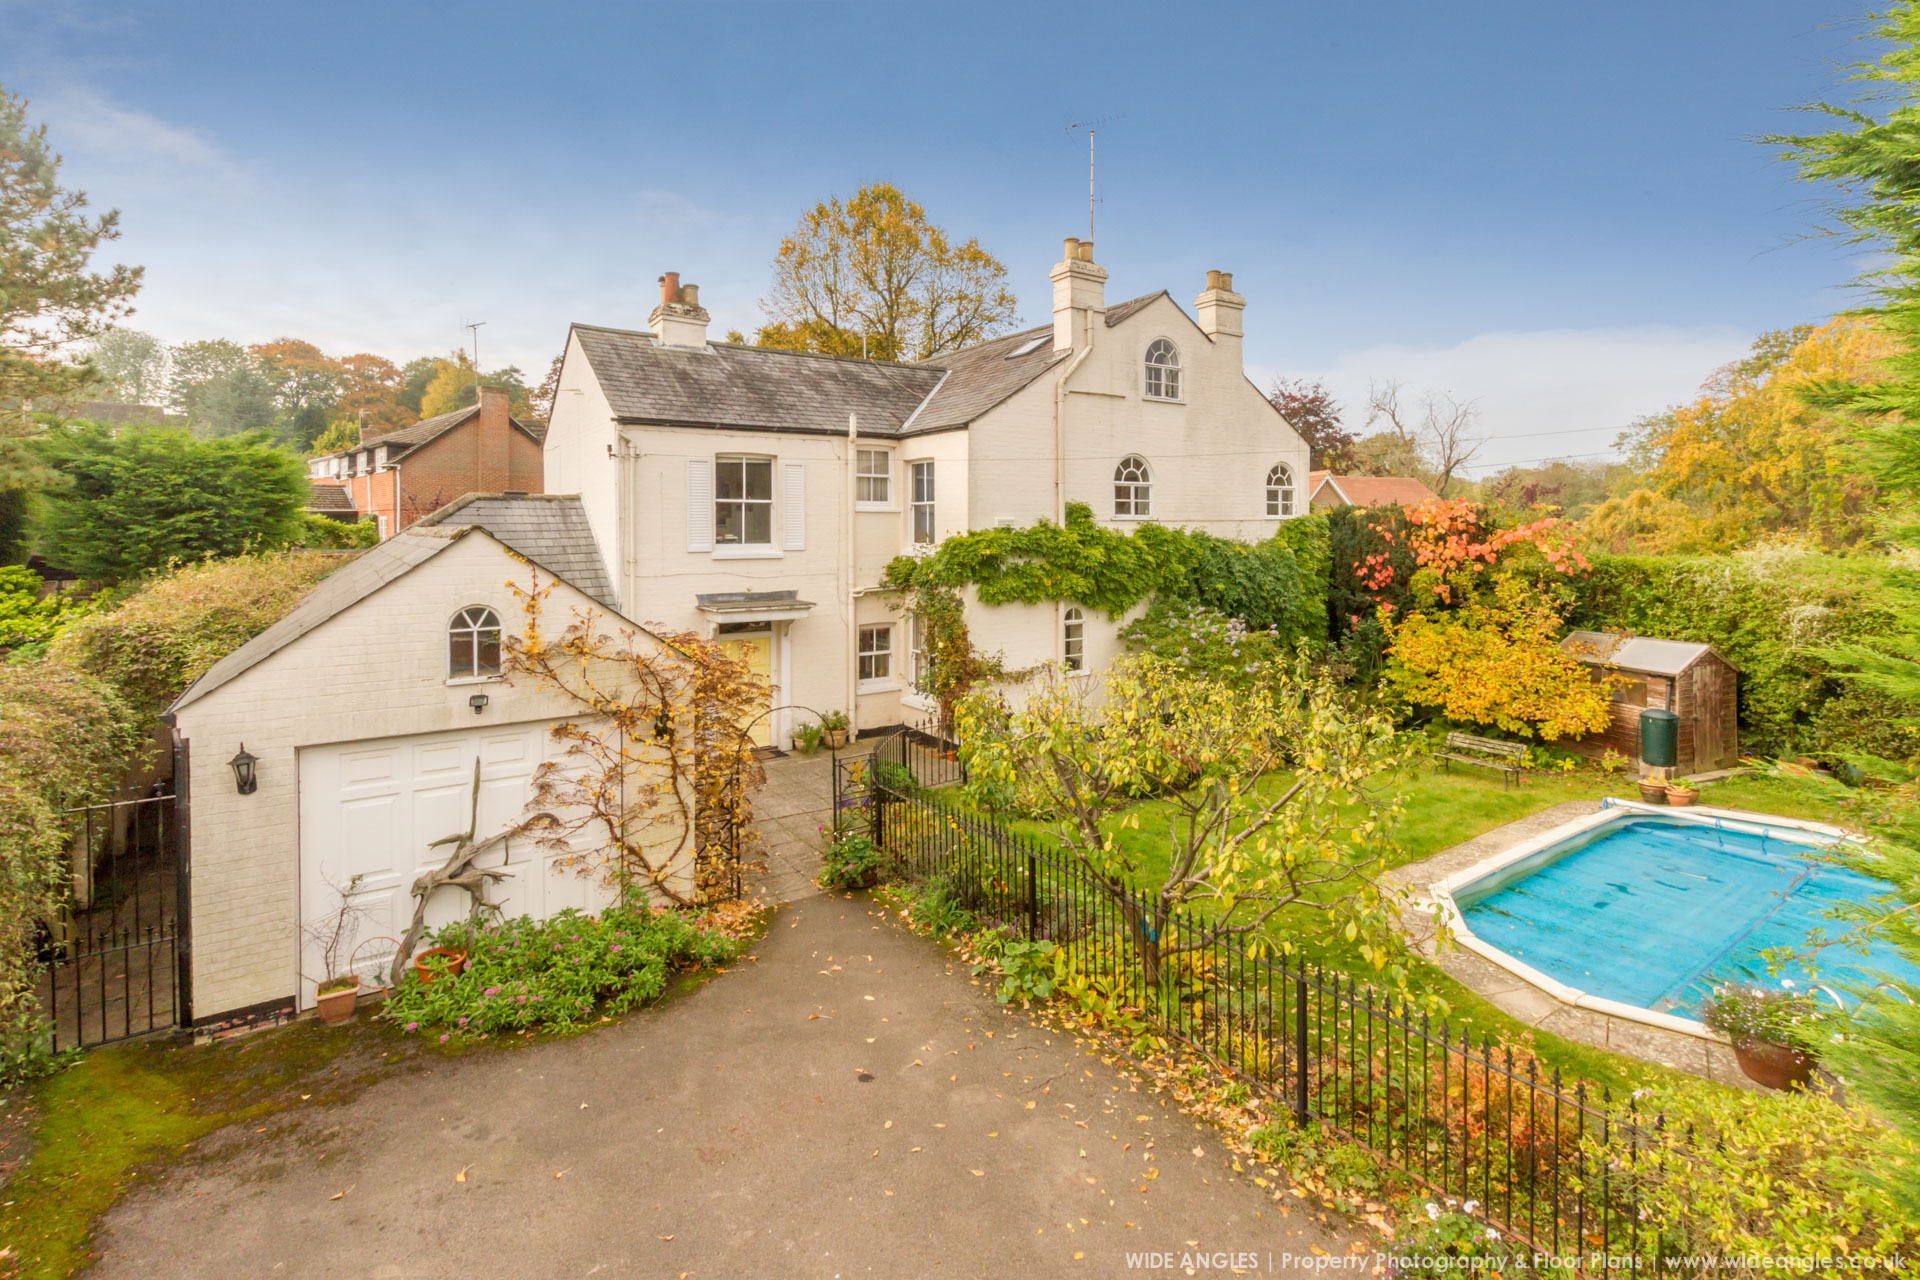 Wide Angles Property Marketing Services Oxfordshire - Elevated Property Photography